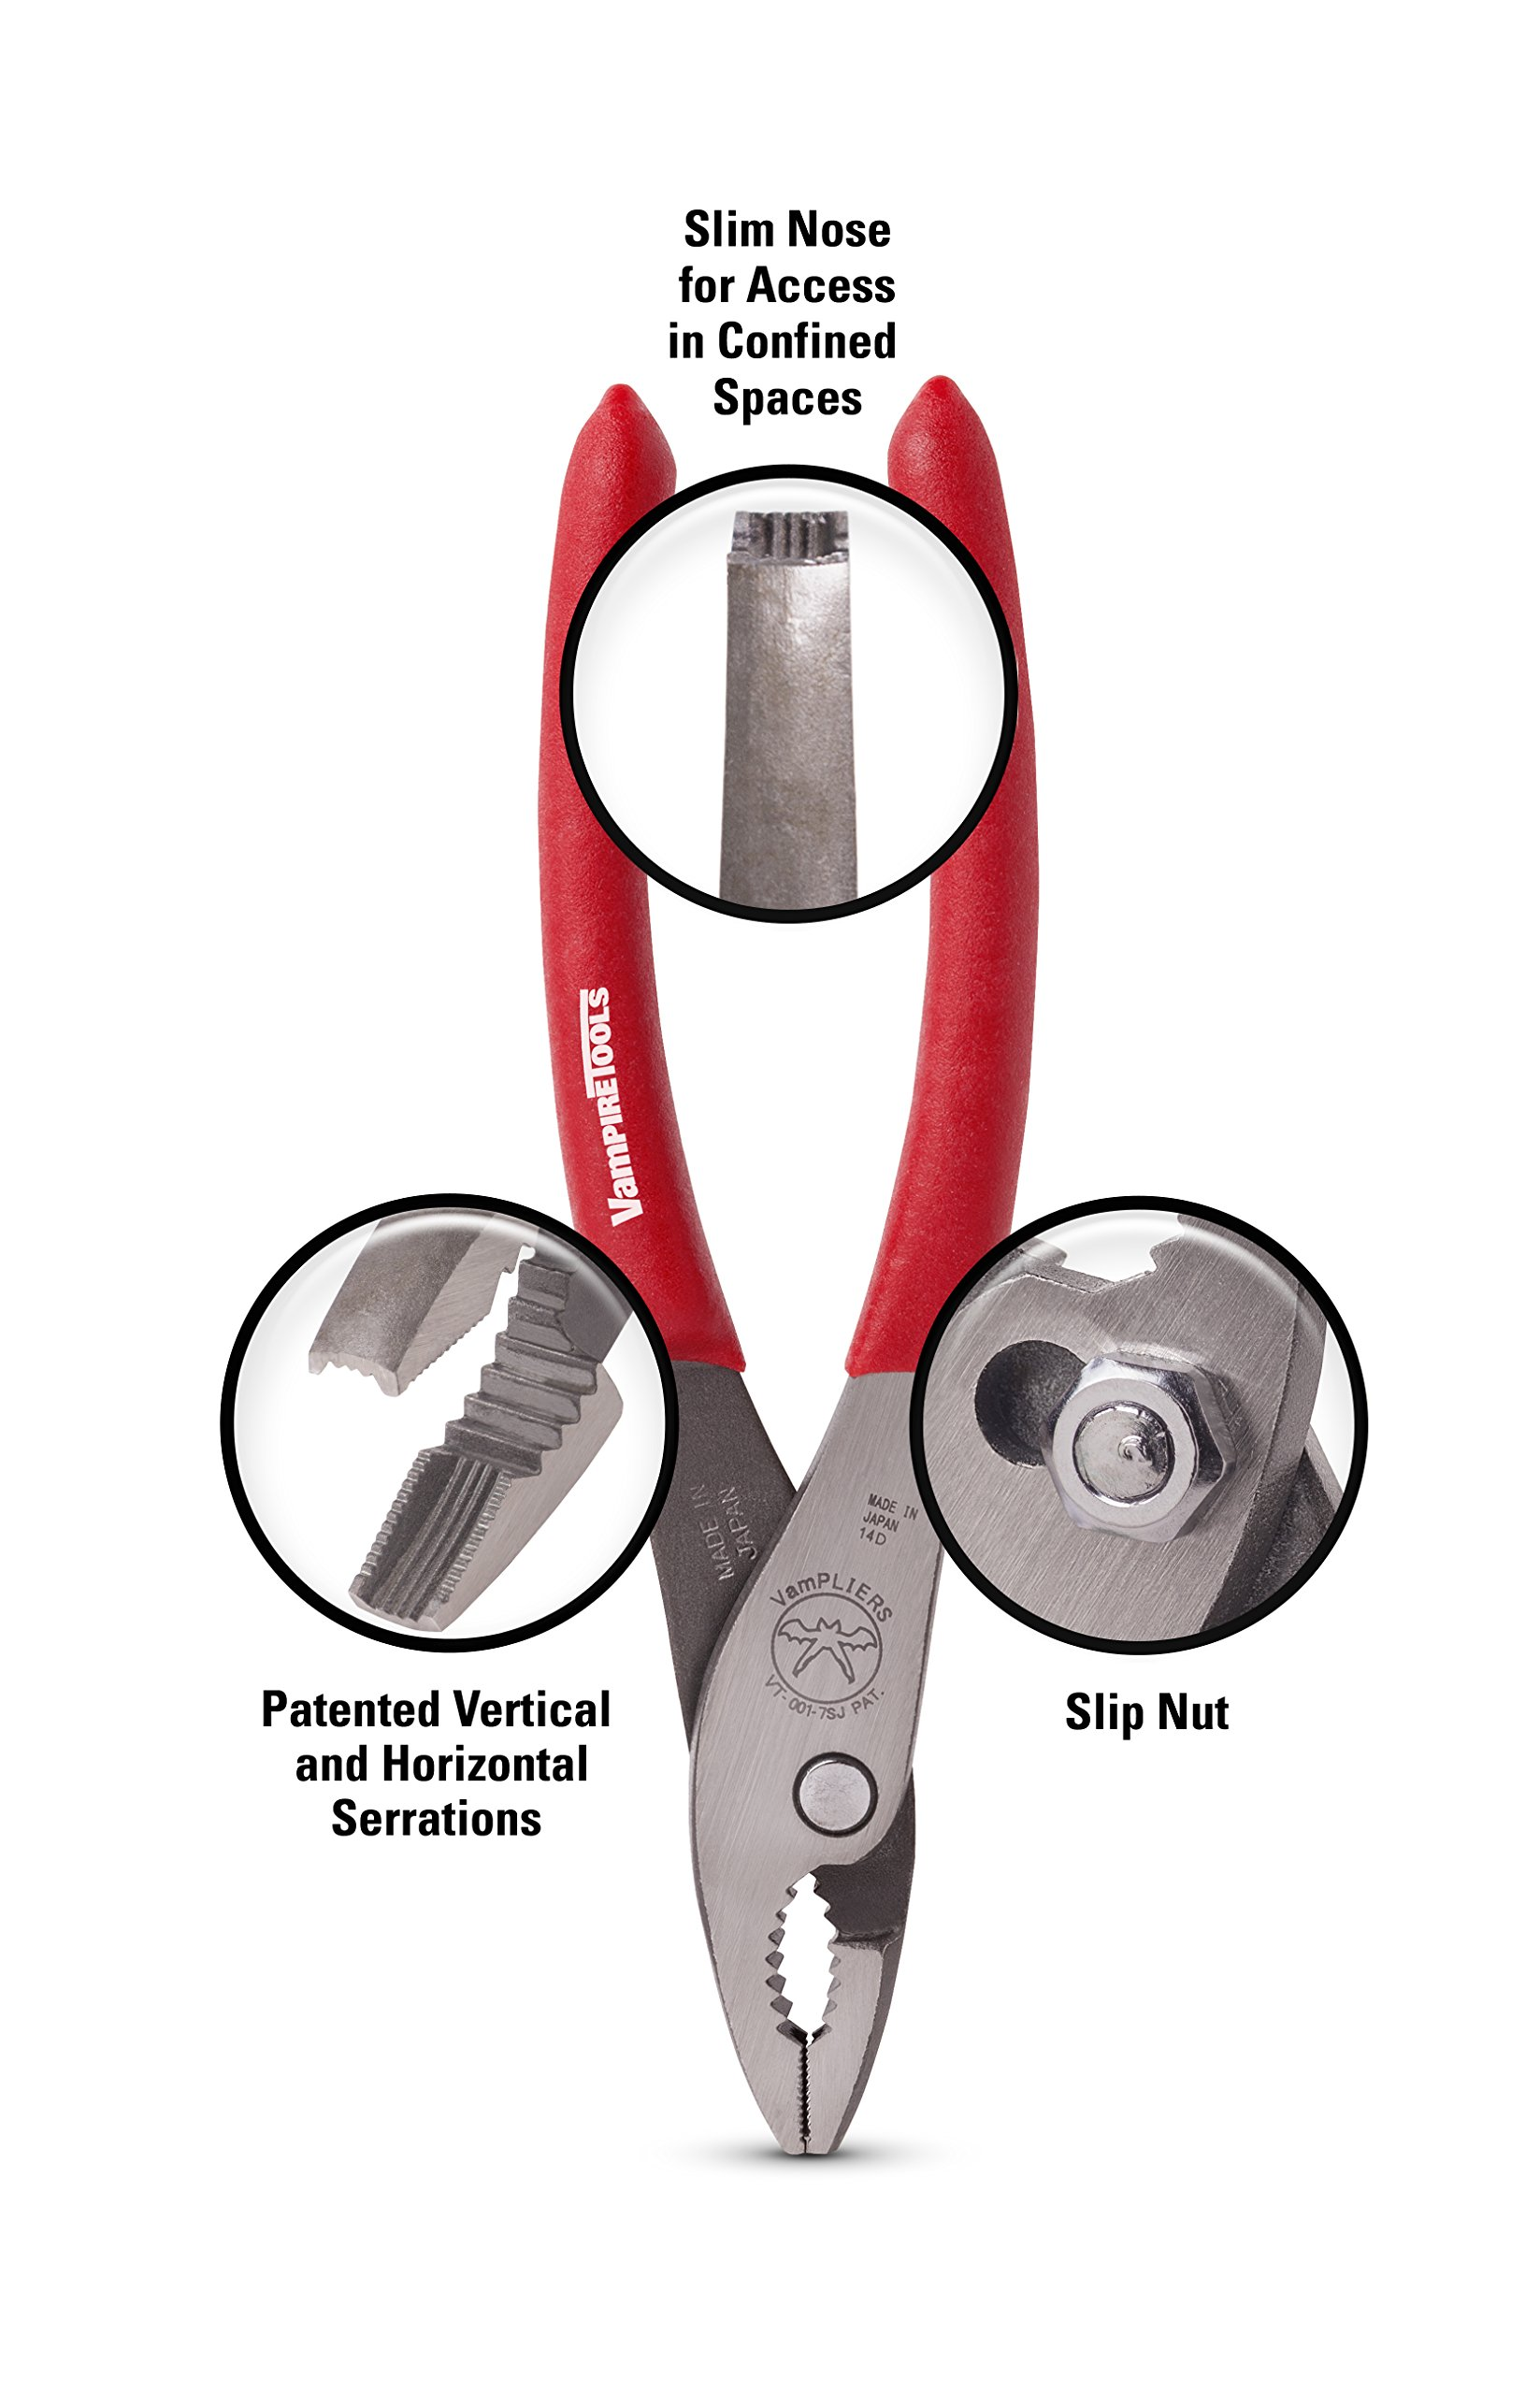 VAMPIRE PROFESSIONAL TOOLS VamPLIERS World's Best Pliers! 2-PC Set S2B Specialty Pliers. Extract Stripped Stuck Security, Corroded or Rusted Screws by VAMPIRE PROFESSIONAL TOOLS